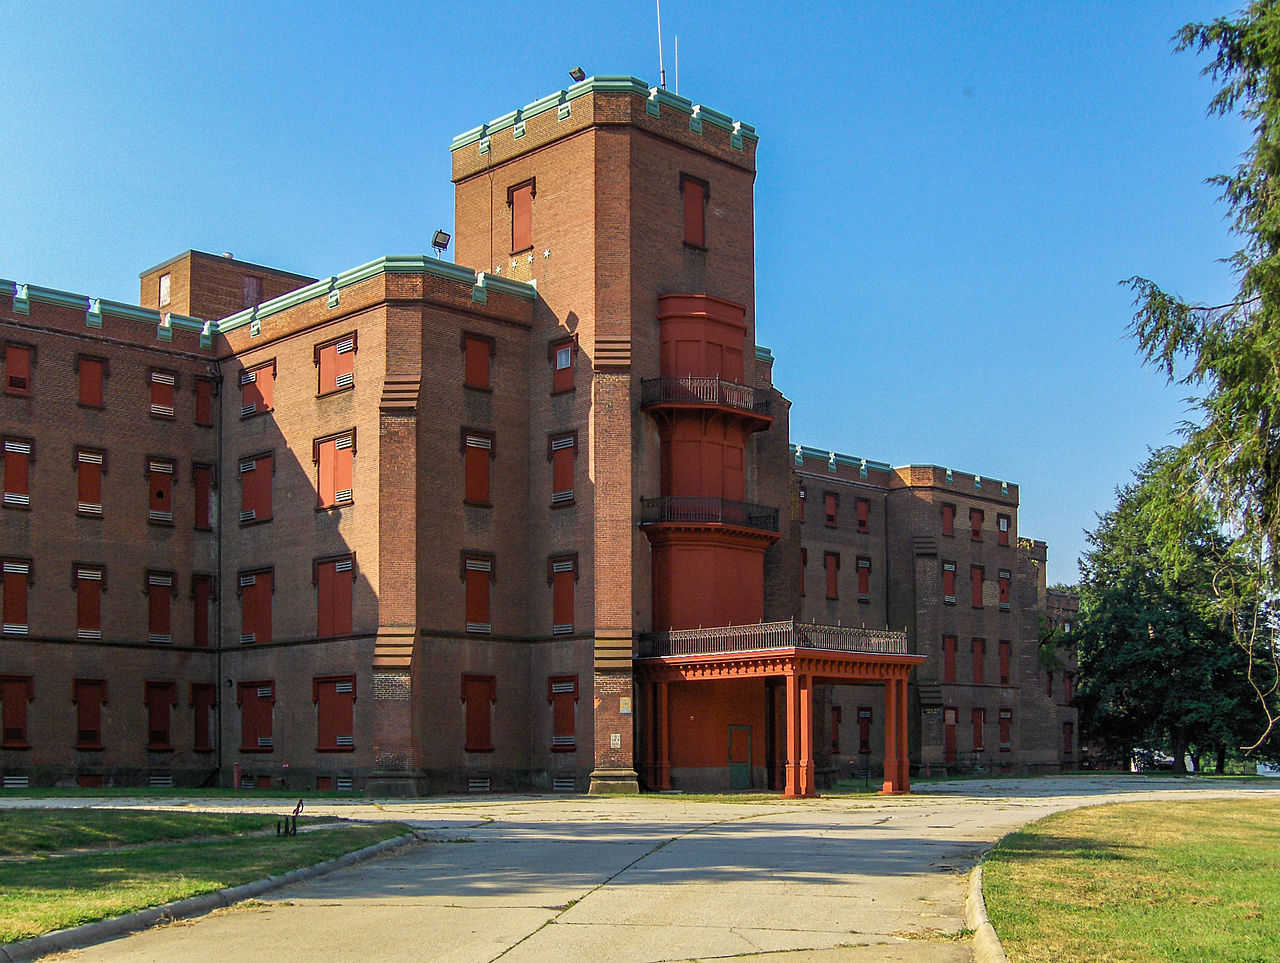 https://commons.wikimedia.org/wiki/File:Center_building_at_Saint_Elizabeths,_August_23,_2006.jpg